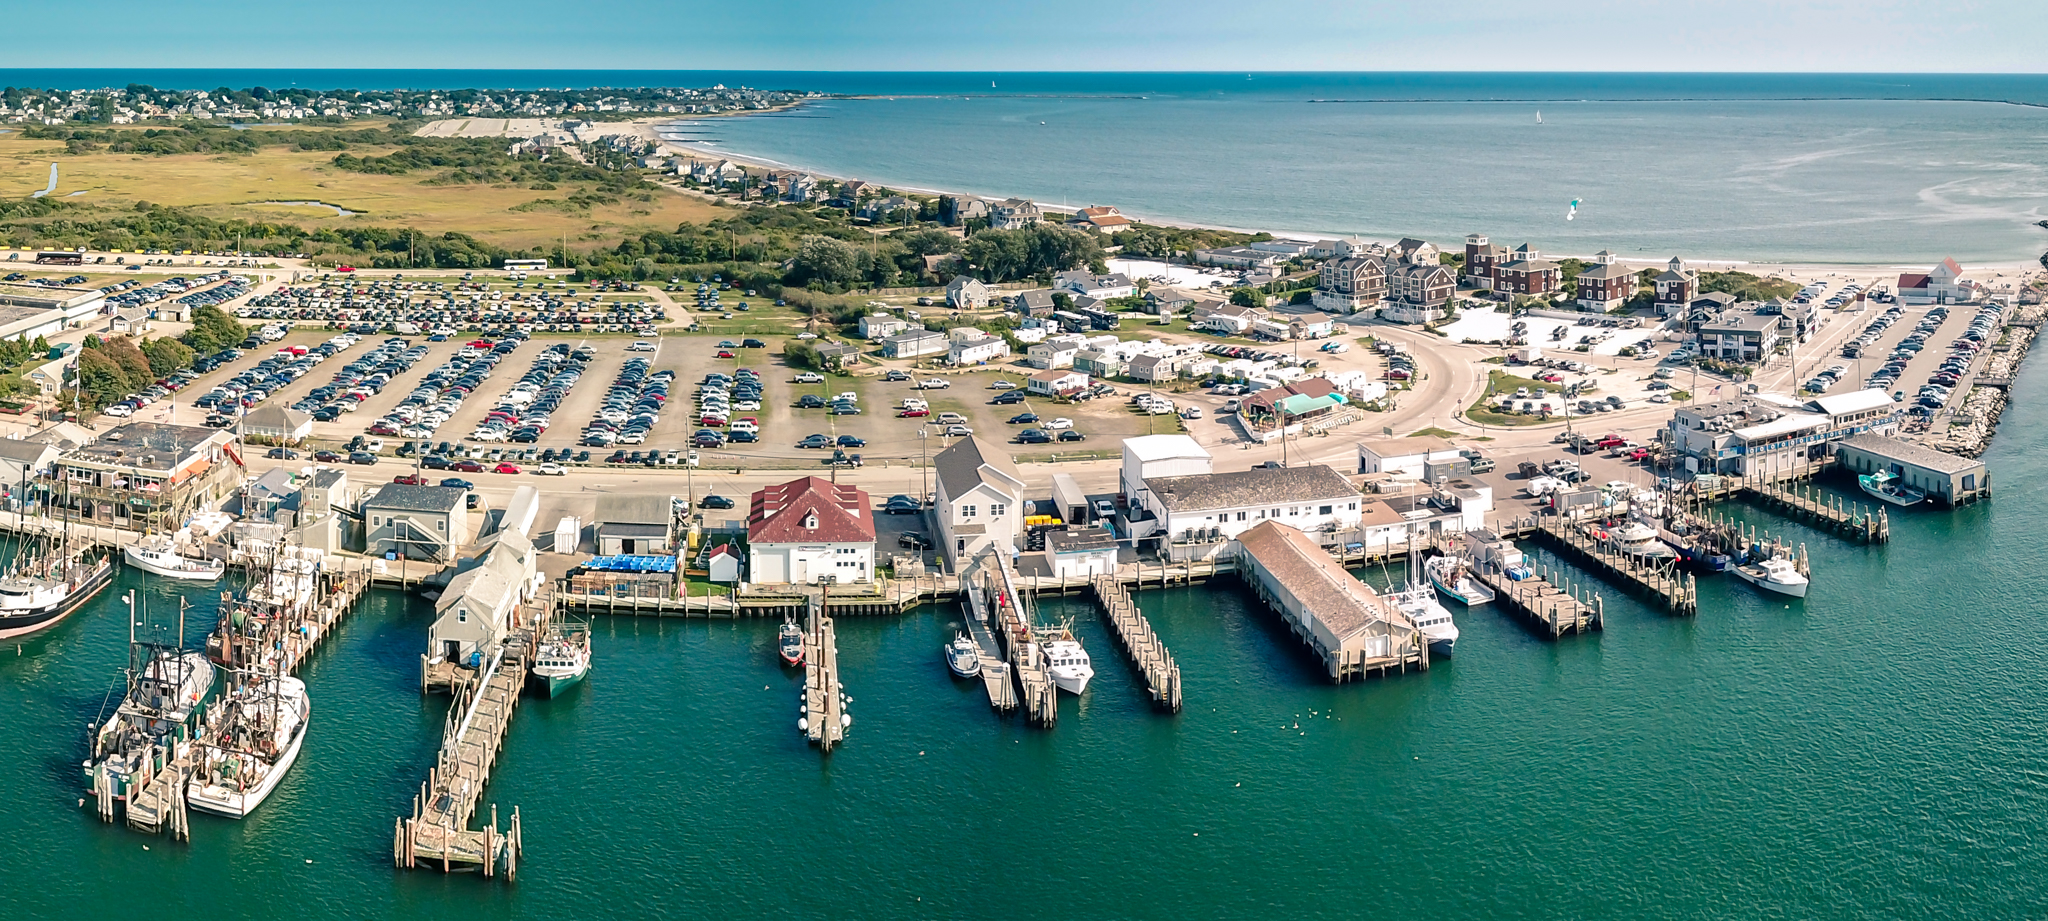 The port of Galilee in Narragansett, Rhode Island.